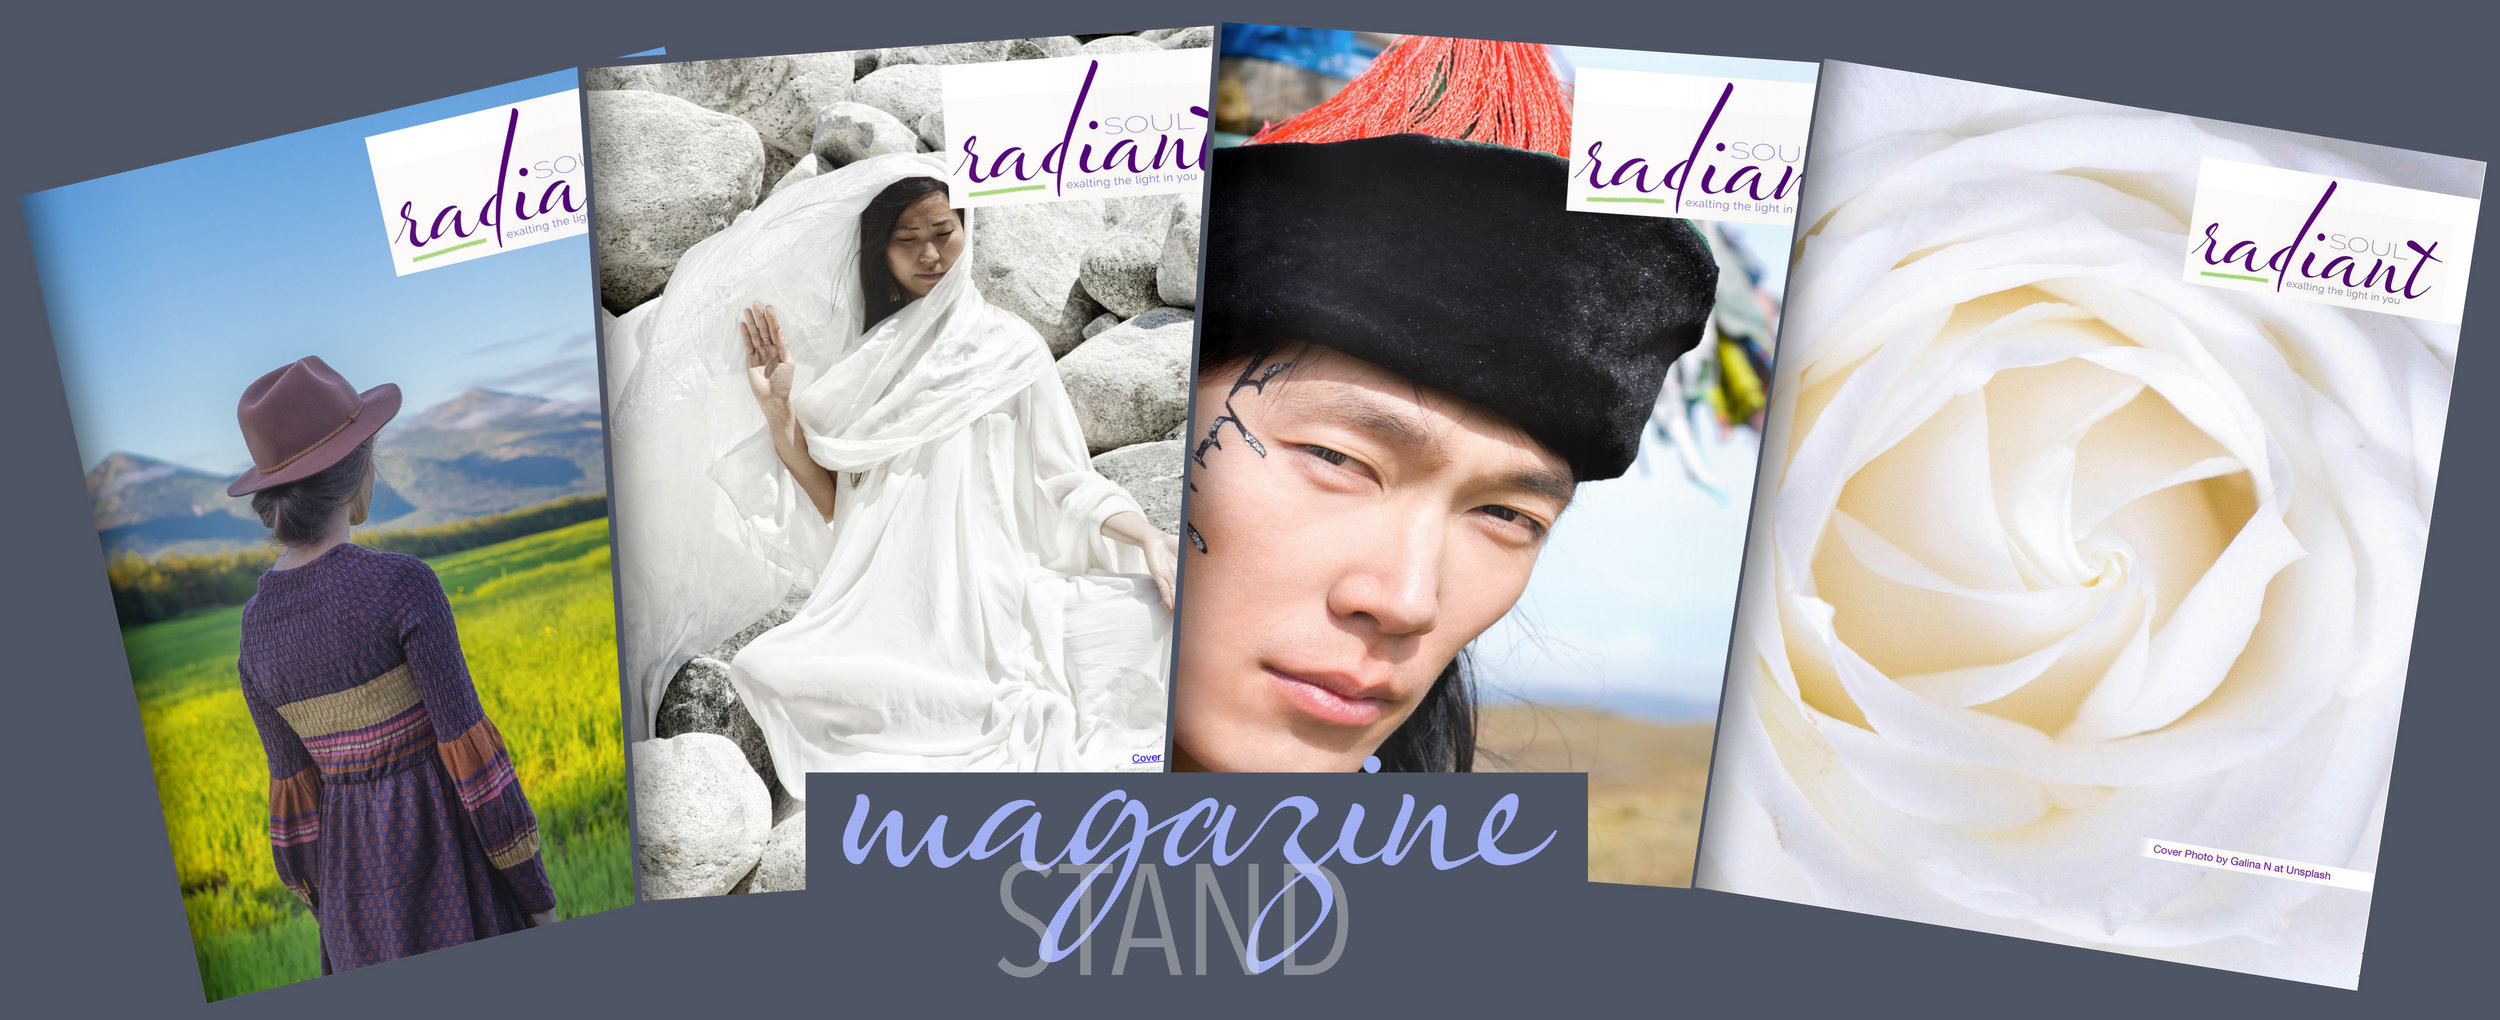 Current and future issues of radiant soul magazine